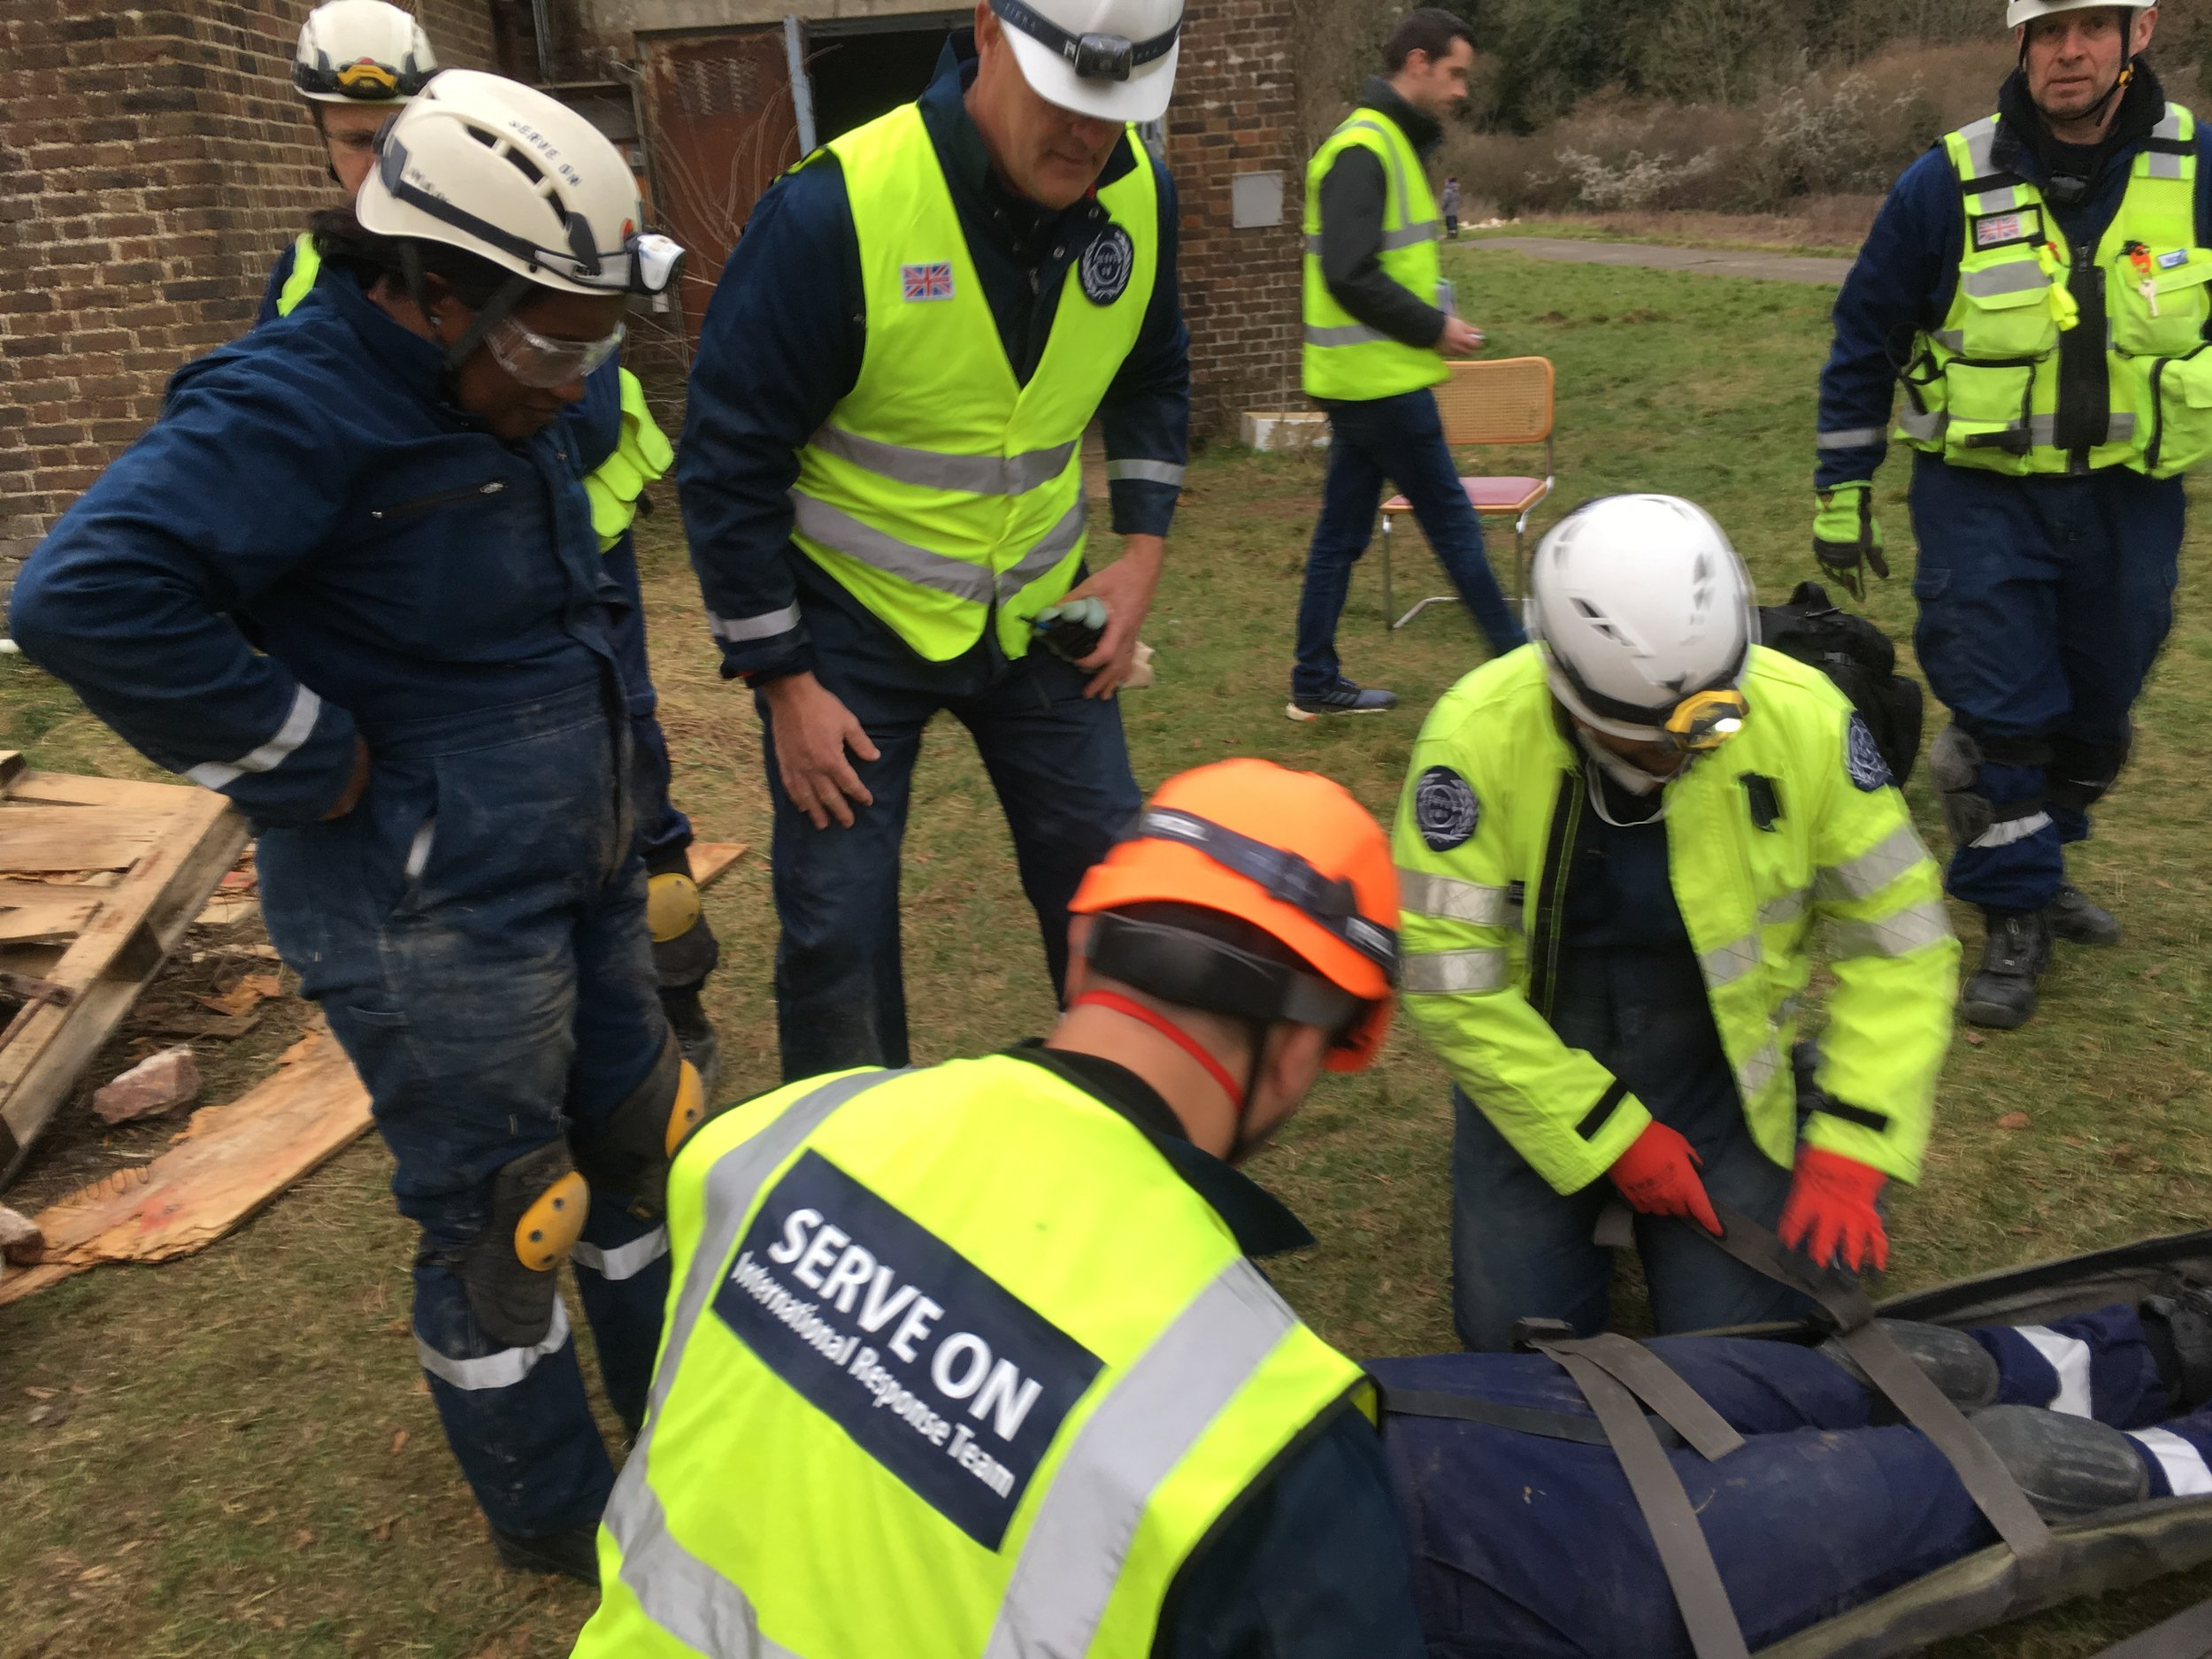 GB Paralympics head coach Paula Dunn and GB Rowing's chief coach for U23s and juniors, Peter Sheppard, help out with a casualty rescue during disaster experience training with Serve On humanitarian response charity. Photo by Martin Phillips, Serve on